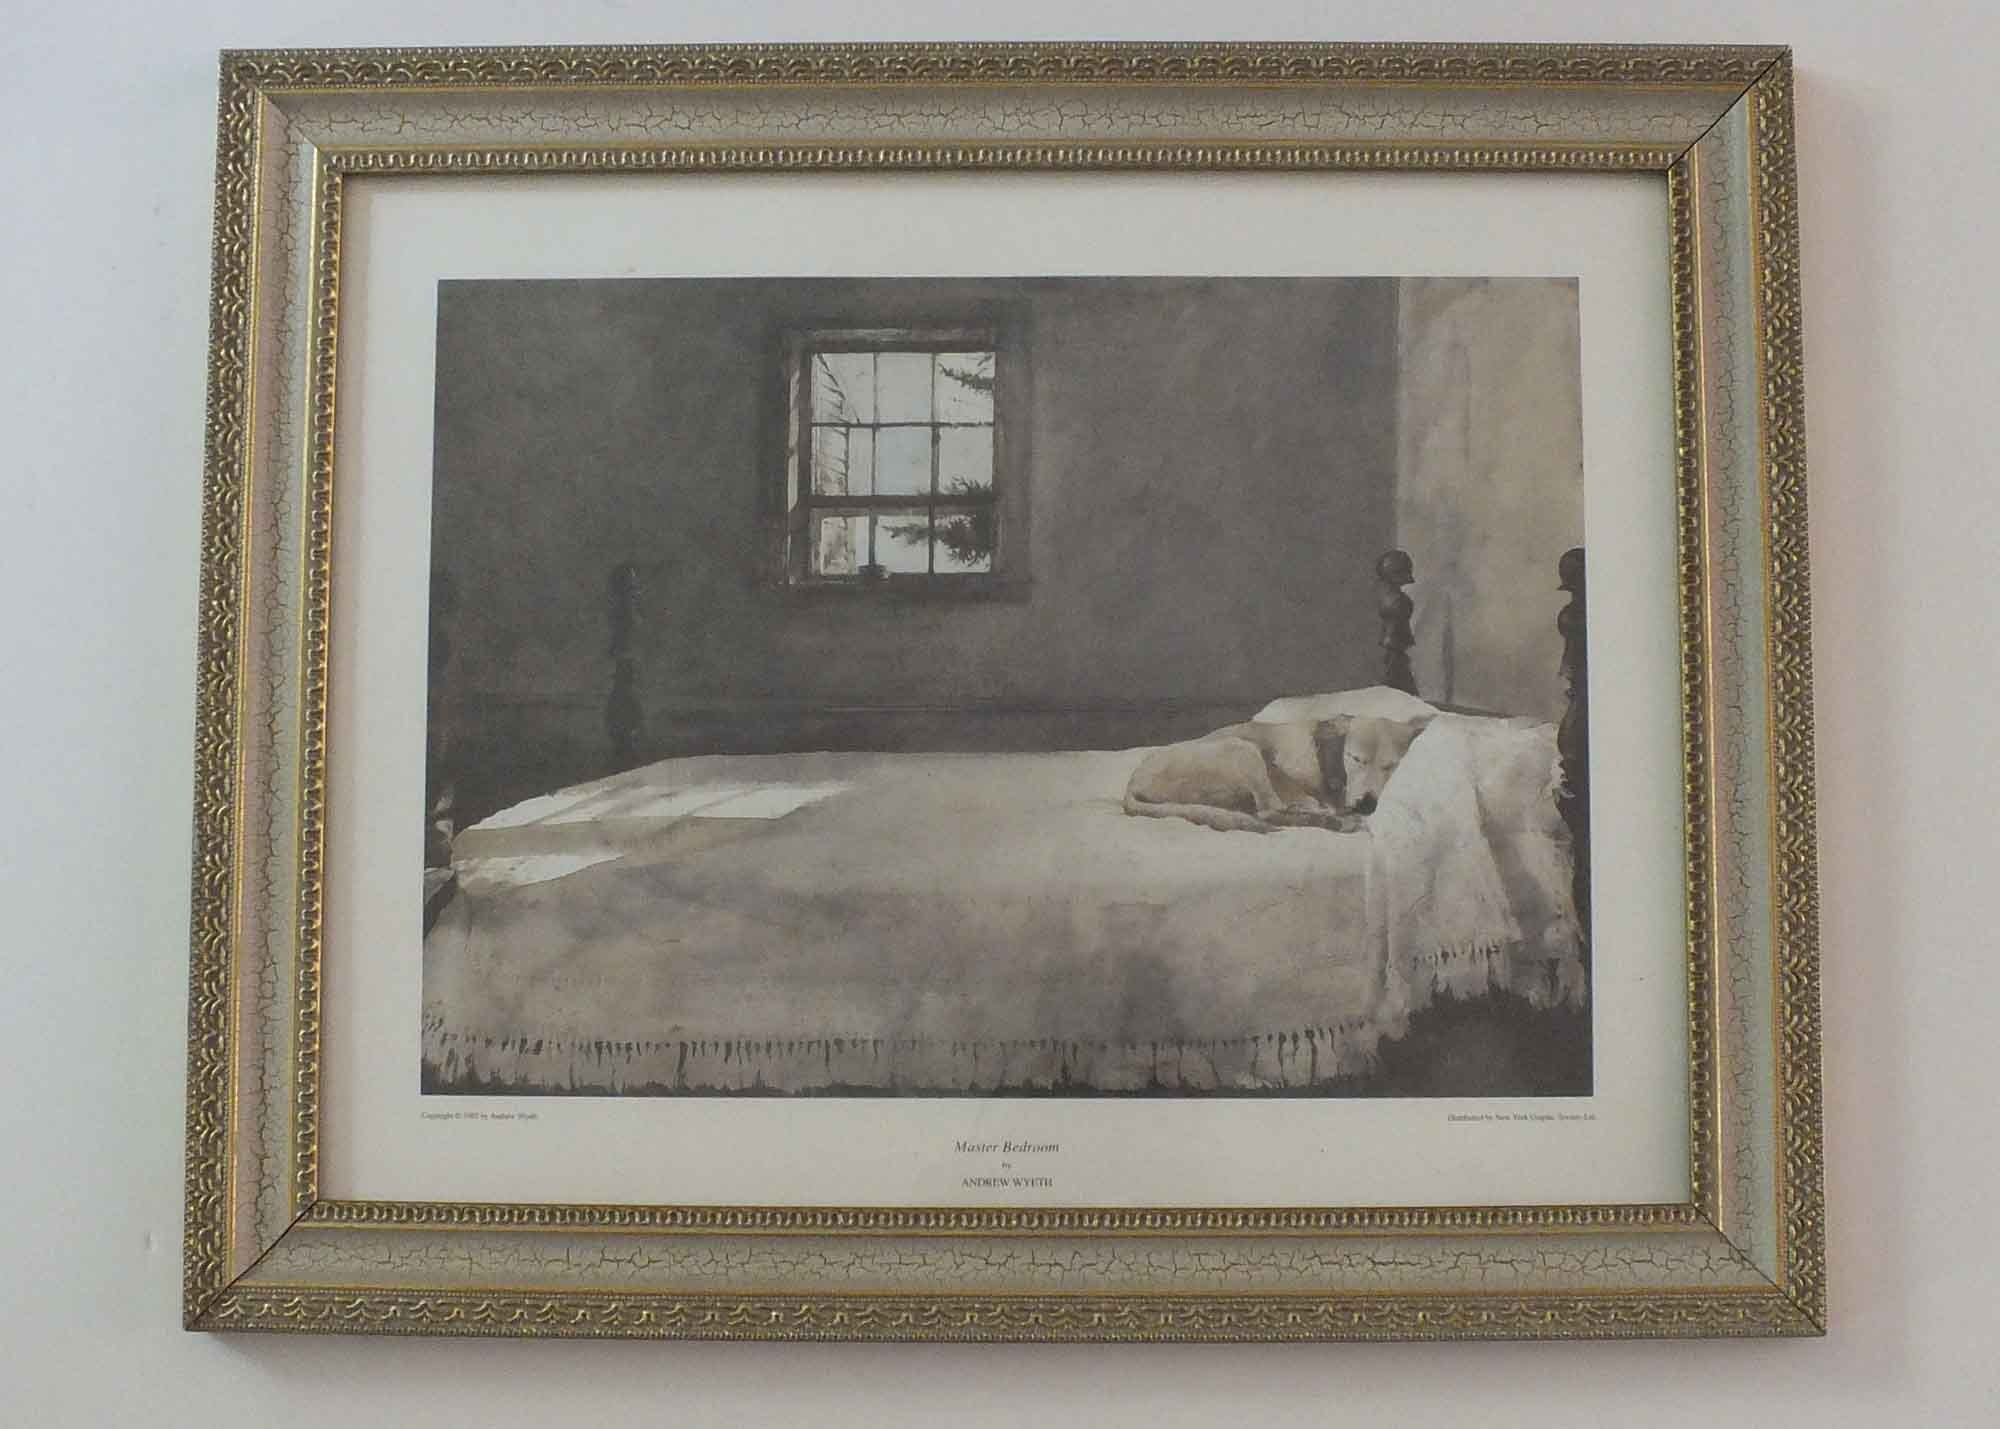 master bedroom andrew wyeth quot master bedroom quot print by andrew wyeth ebth 15983